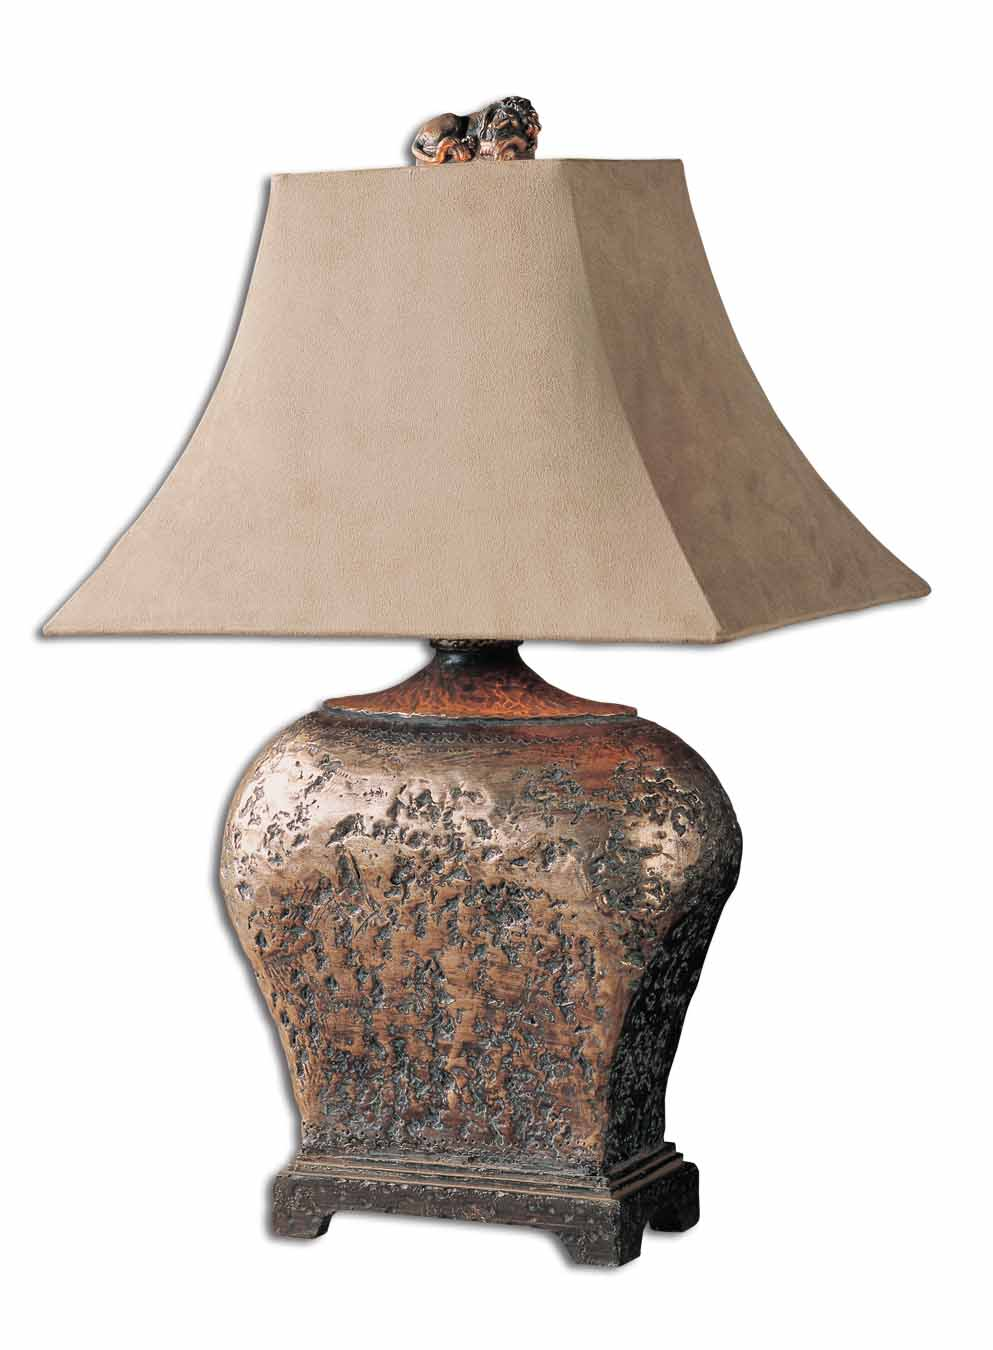 808d1755e64 Xander Table Lamp by Uttermost - 27